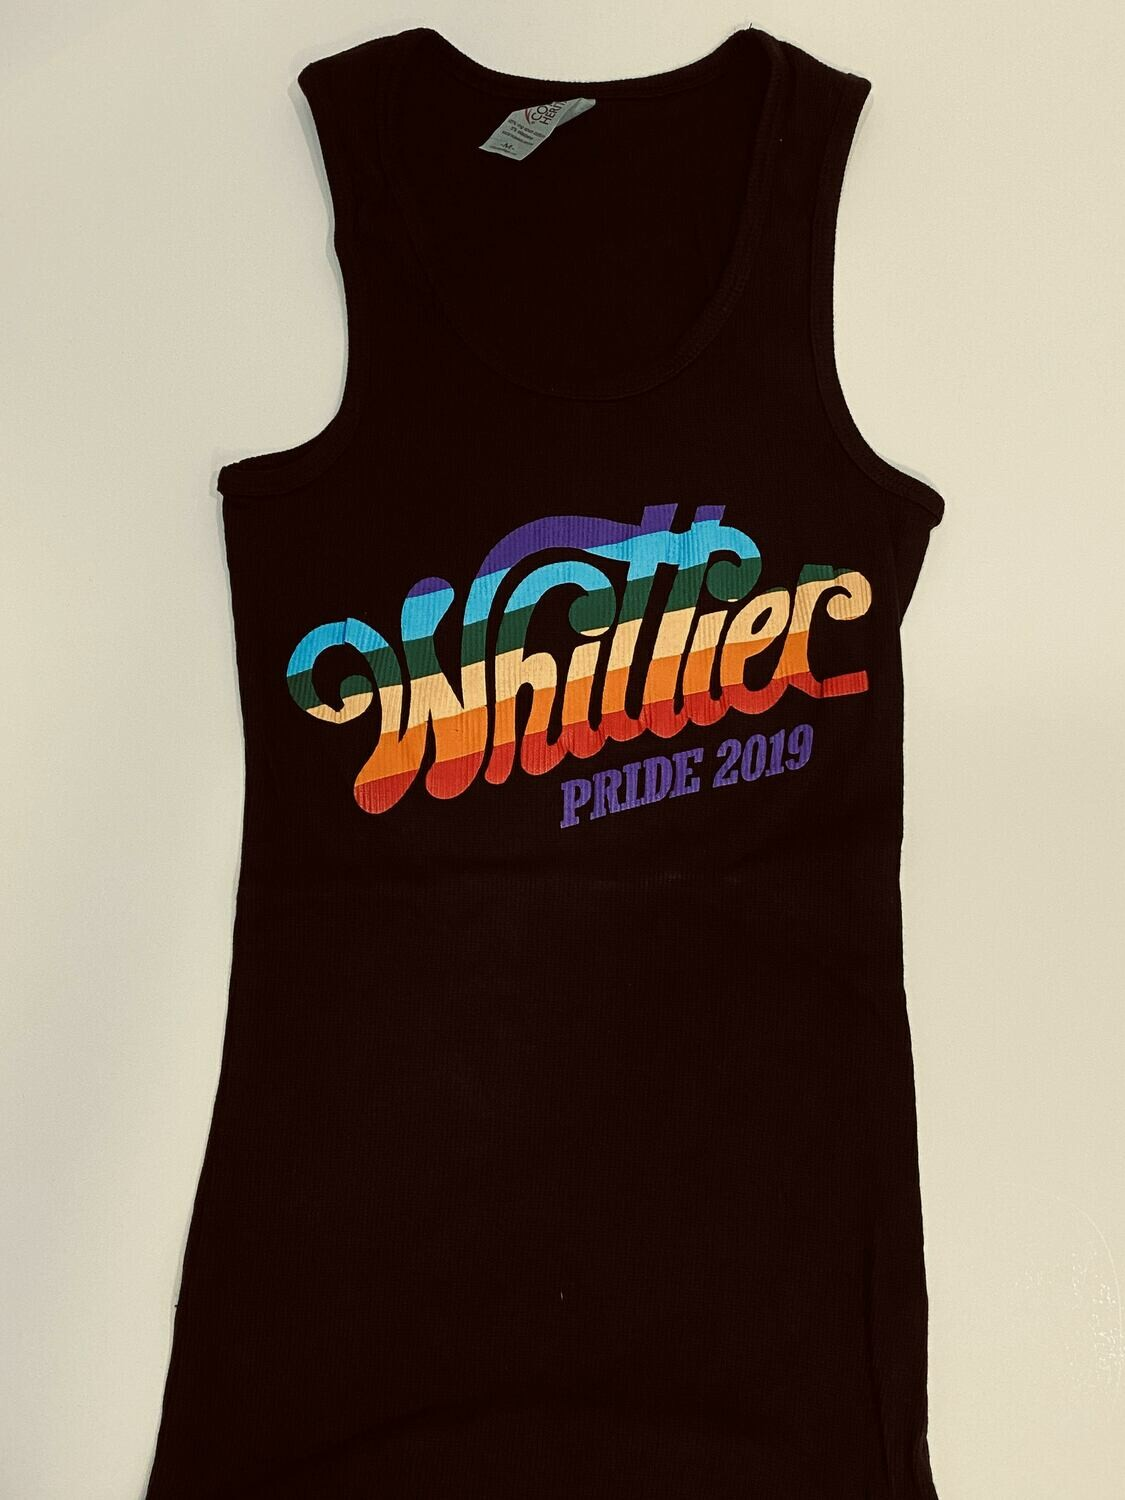 2019 Black Women's Tank (Small)